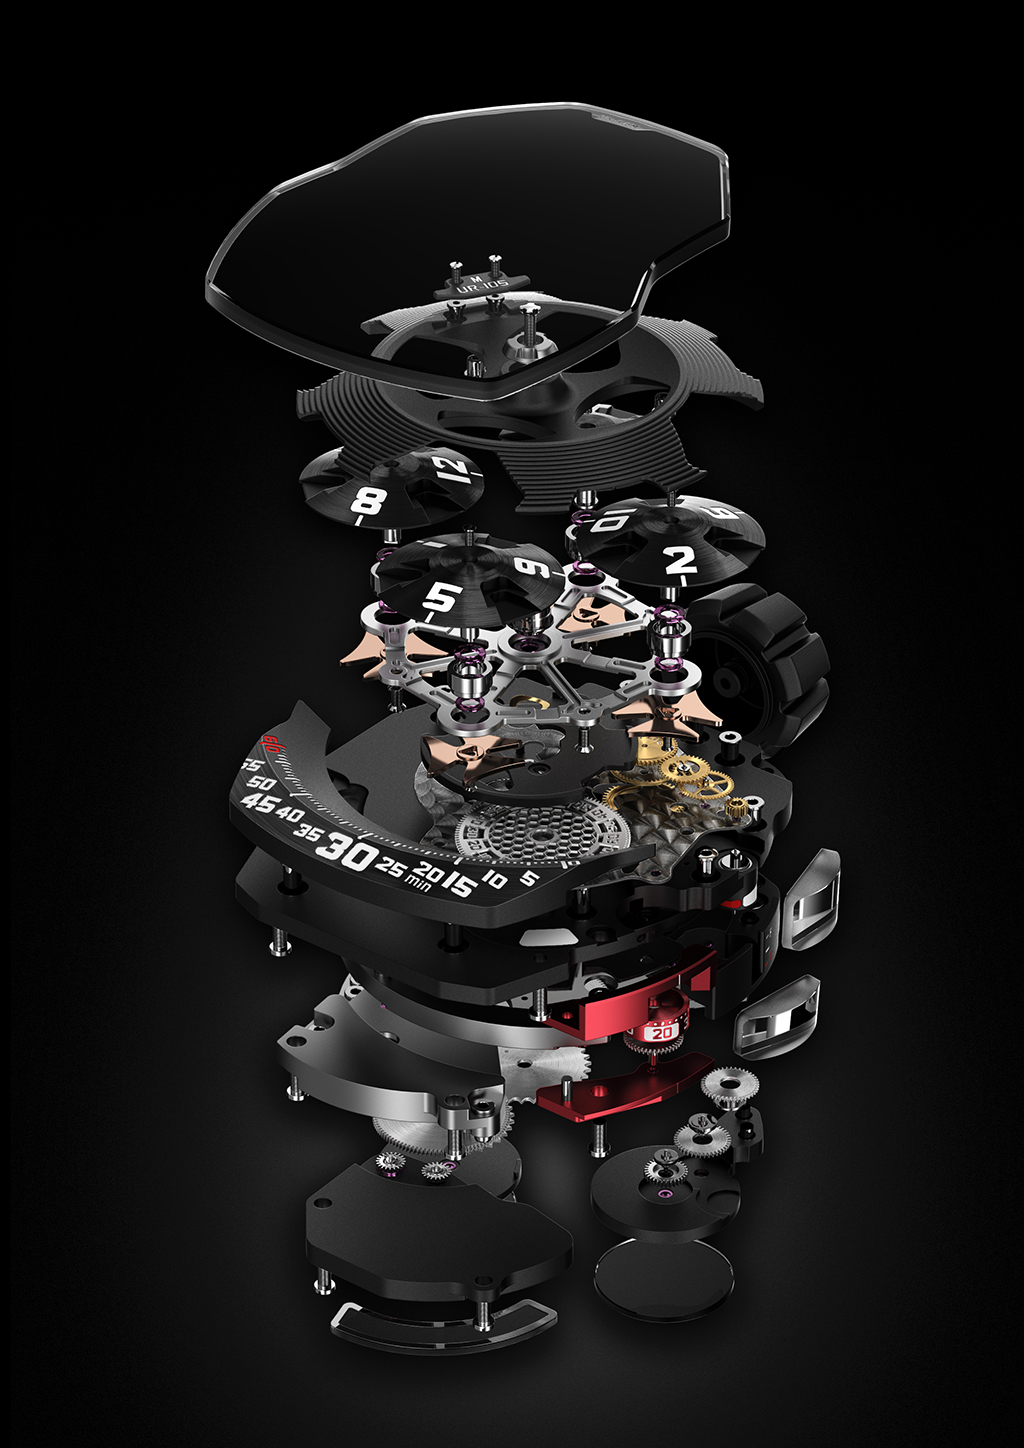 Exploded view of the movement: Caliber UR5.01 with 38 jewels, beating at 28,800 bph and a power reserve of 42 hours.